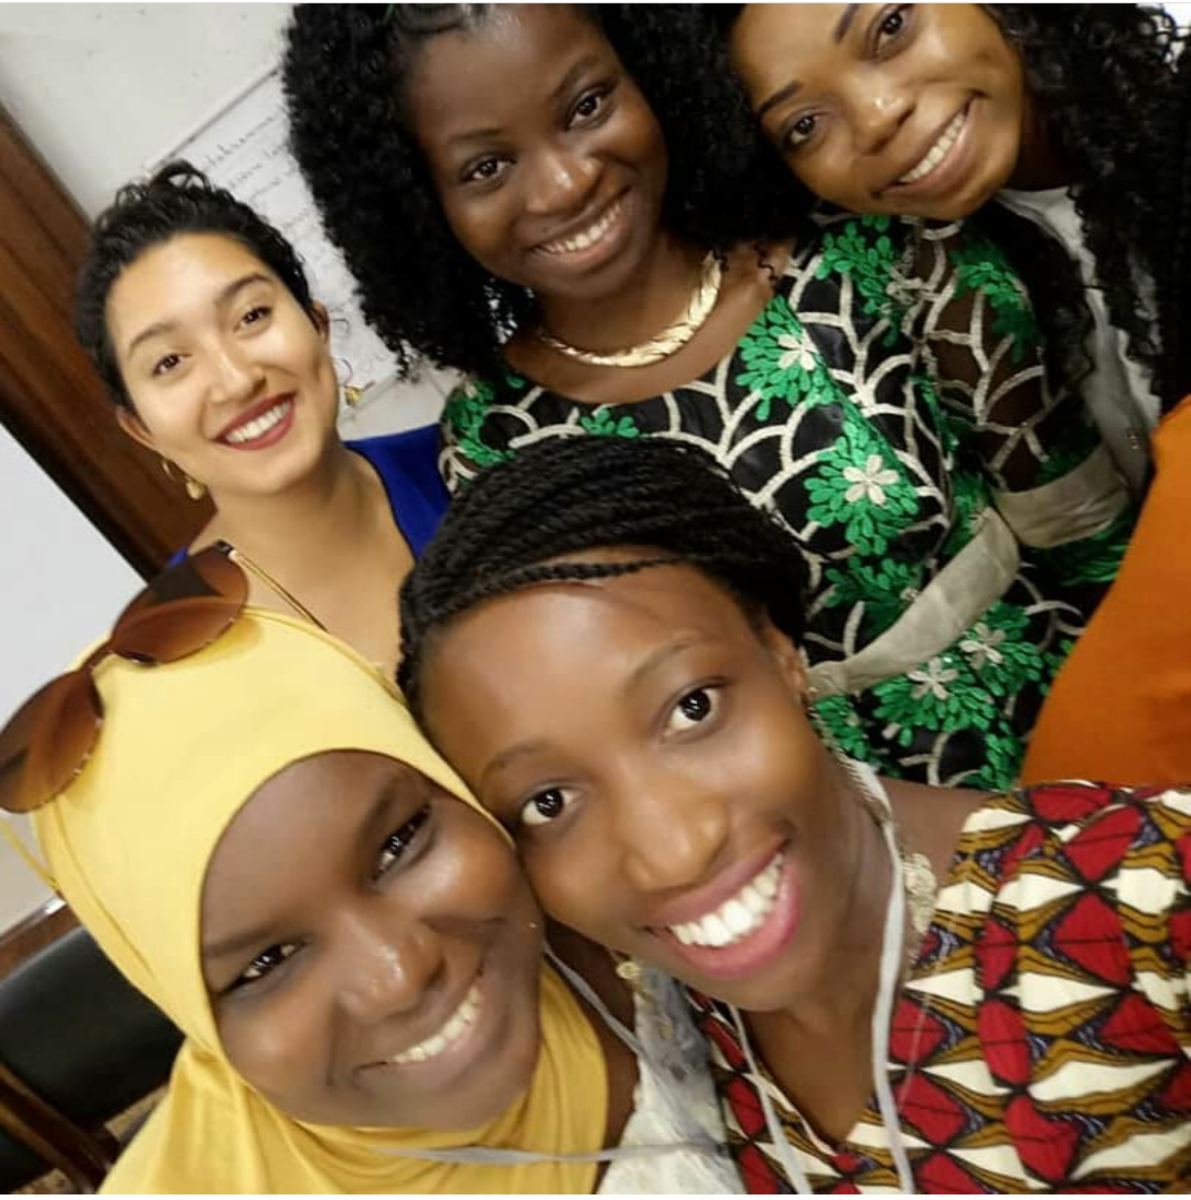 Africa's beauty is in its diversity. In this photo, we represent Tunisia, Cameroon, Nigeria, the Gambia, and Togo, respectively.